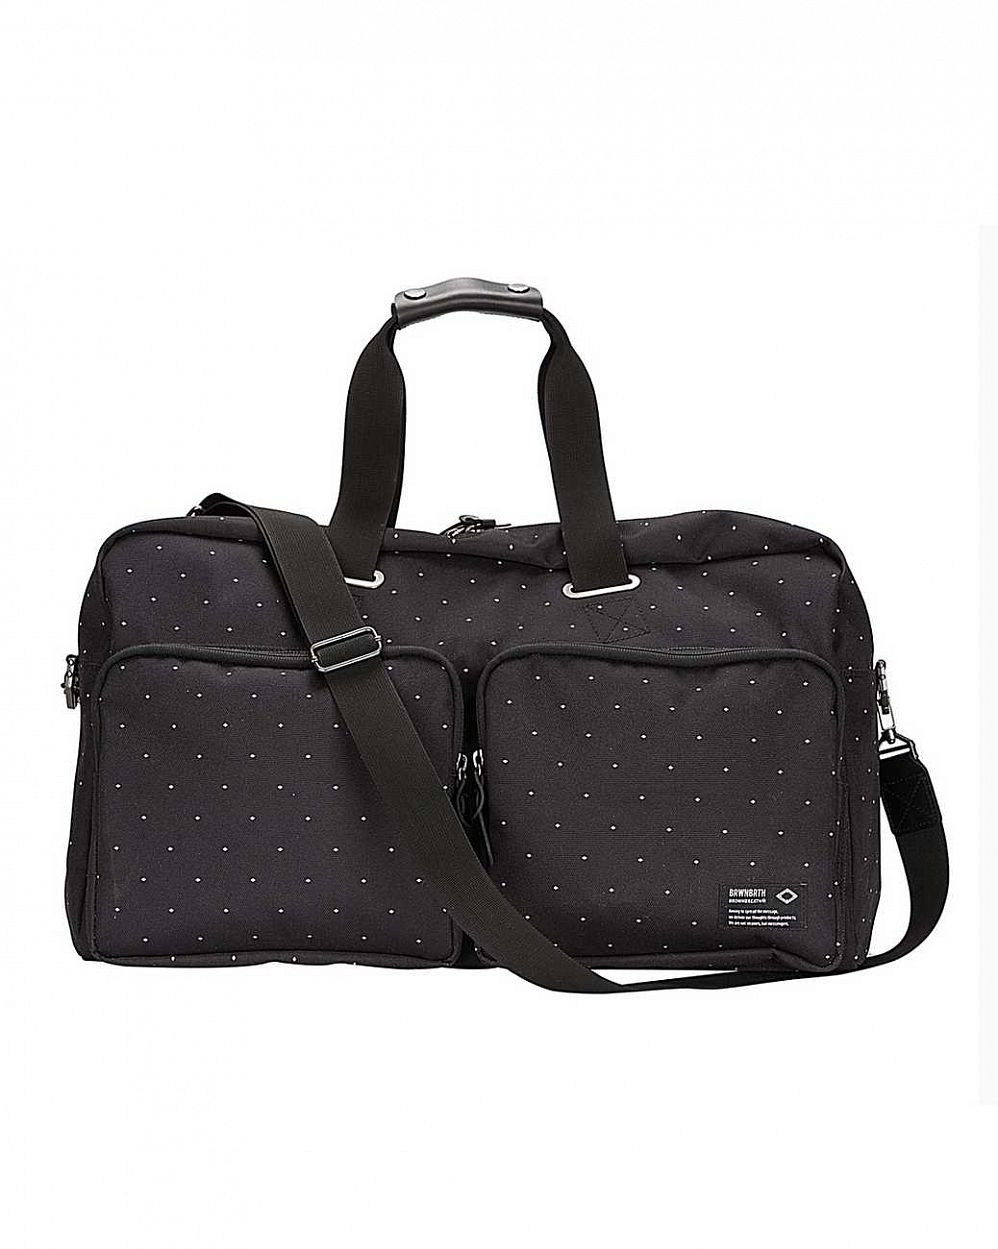 Сумка Brownbreath oblique boston bag black dot интернет-магазин в Москве